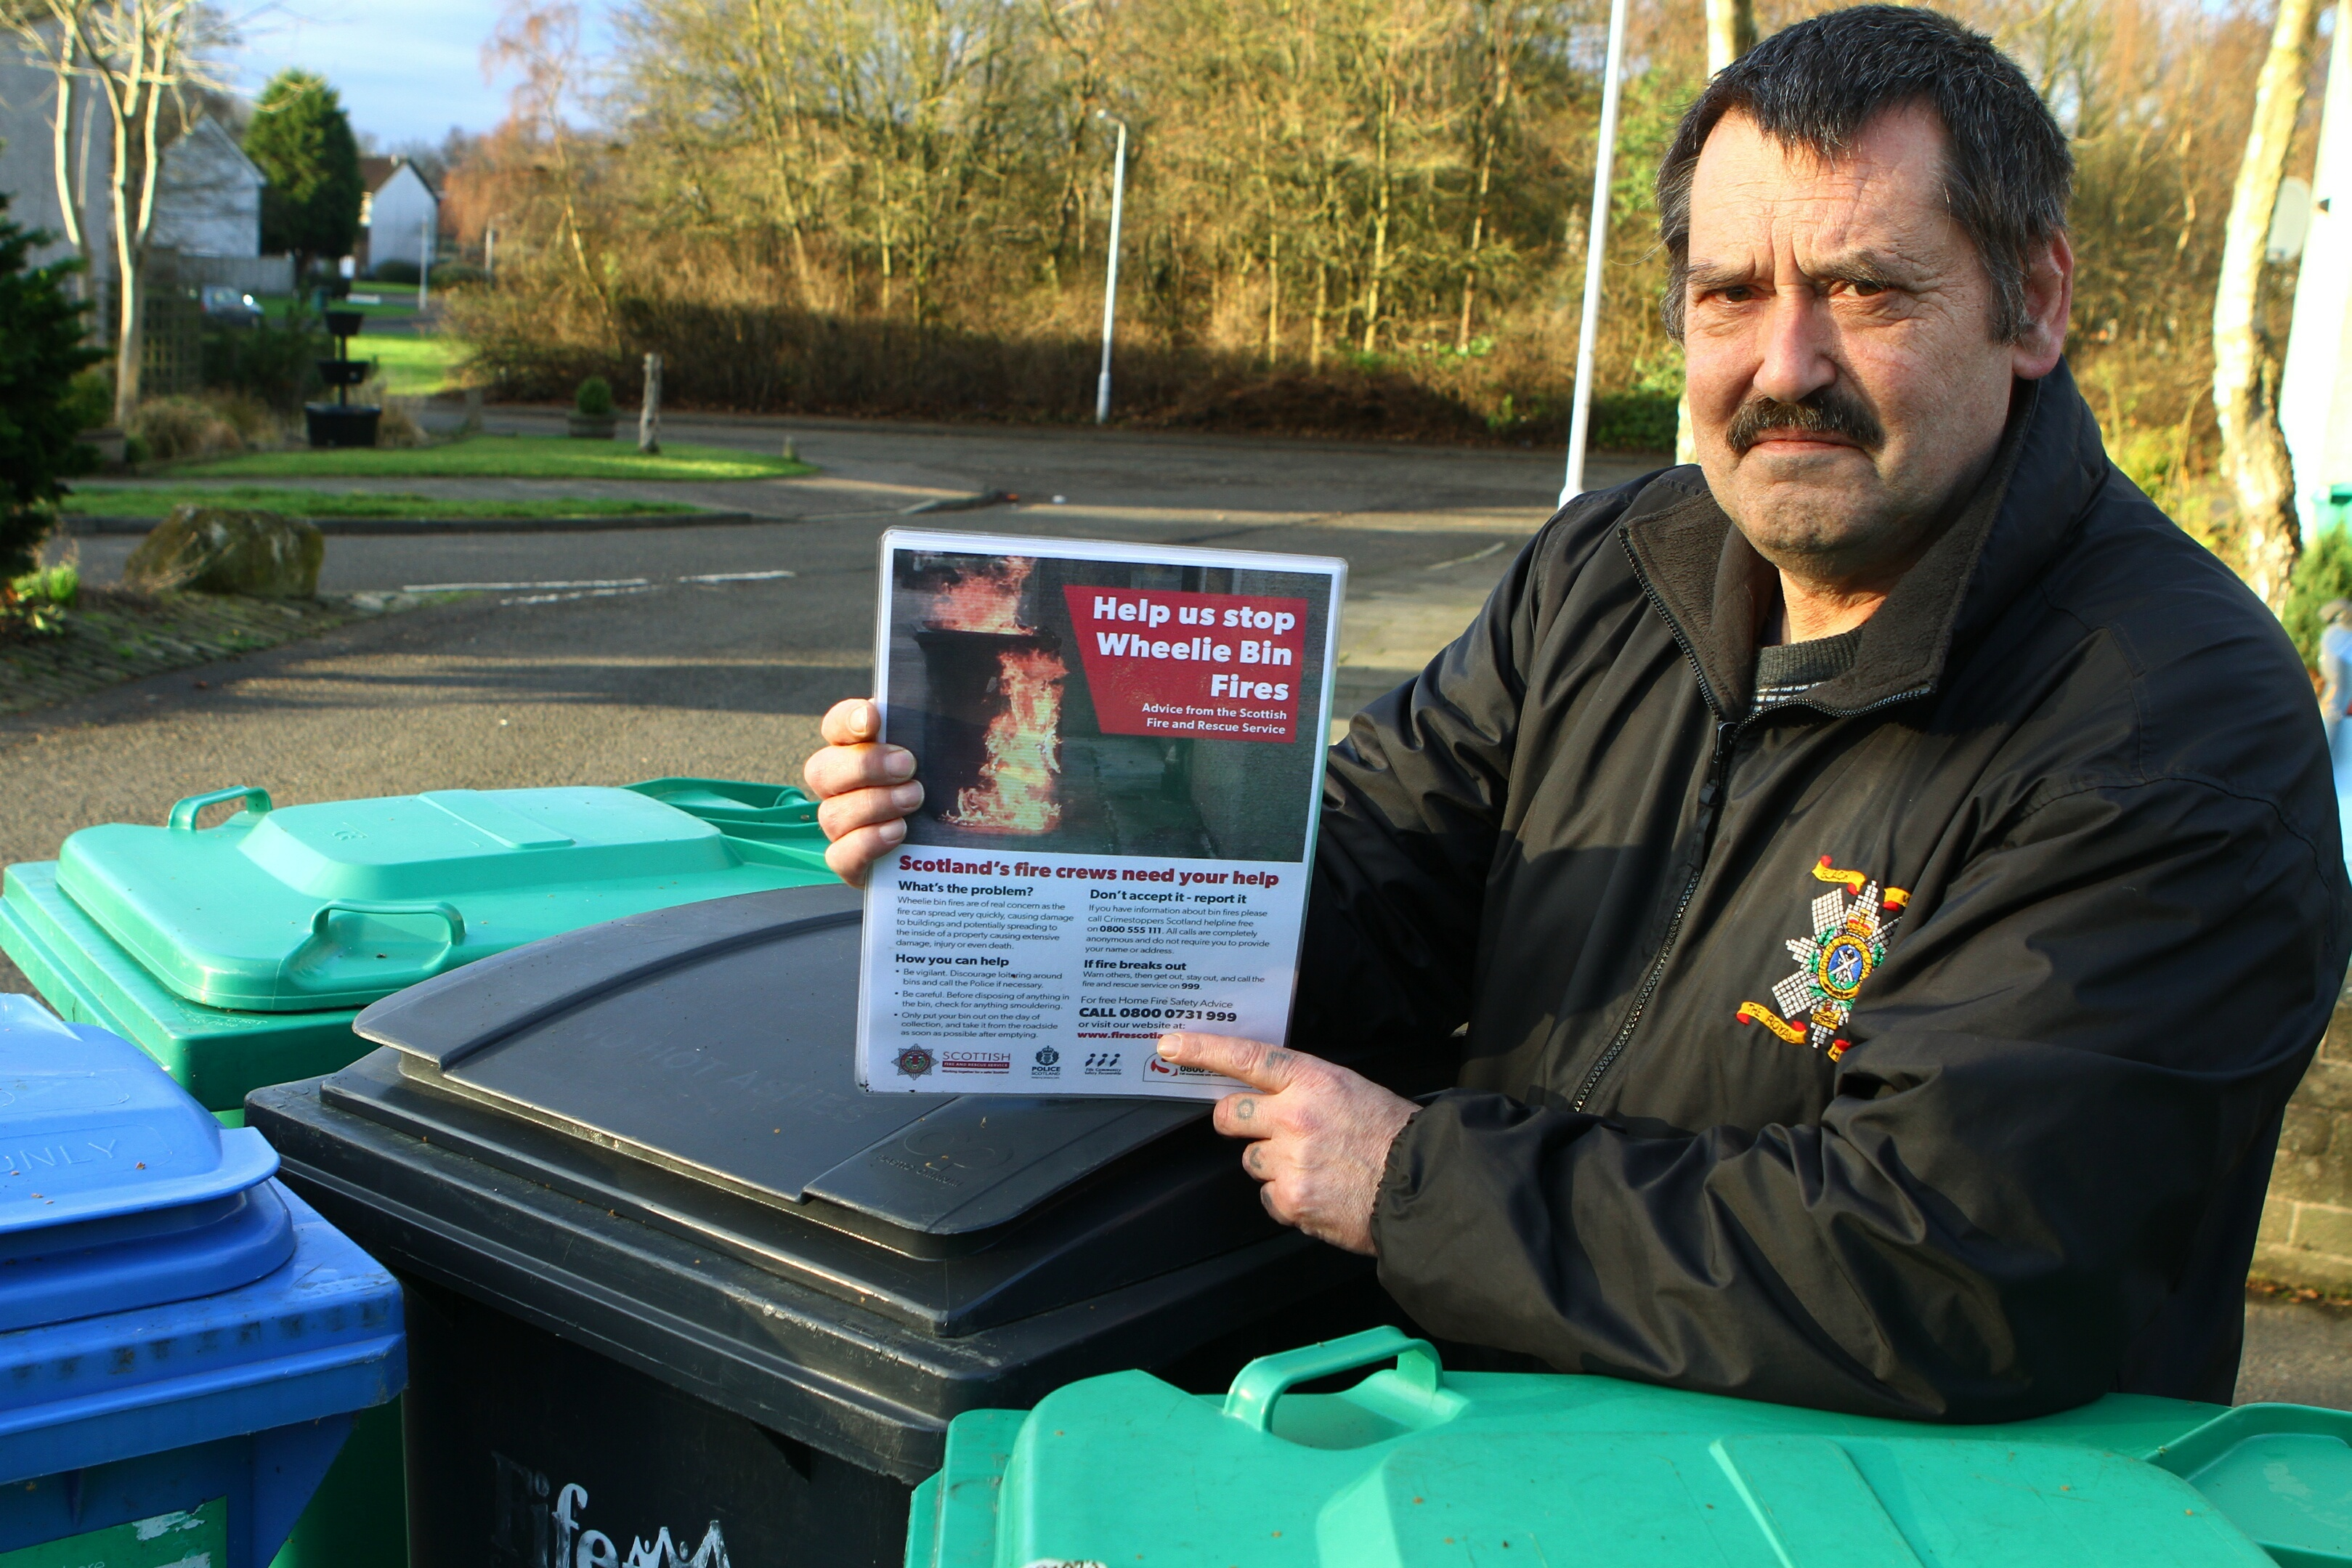 Peter Scobie, chairman of Pitteuchar, Stenton and Finglassie Community Council, is helping to publicise the wheelie bin fire warning.